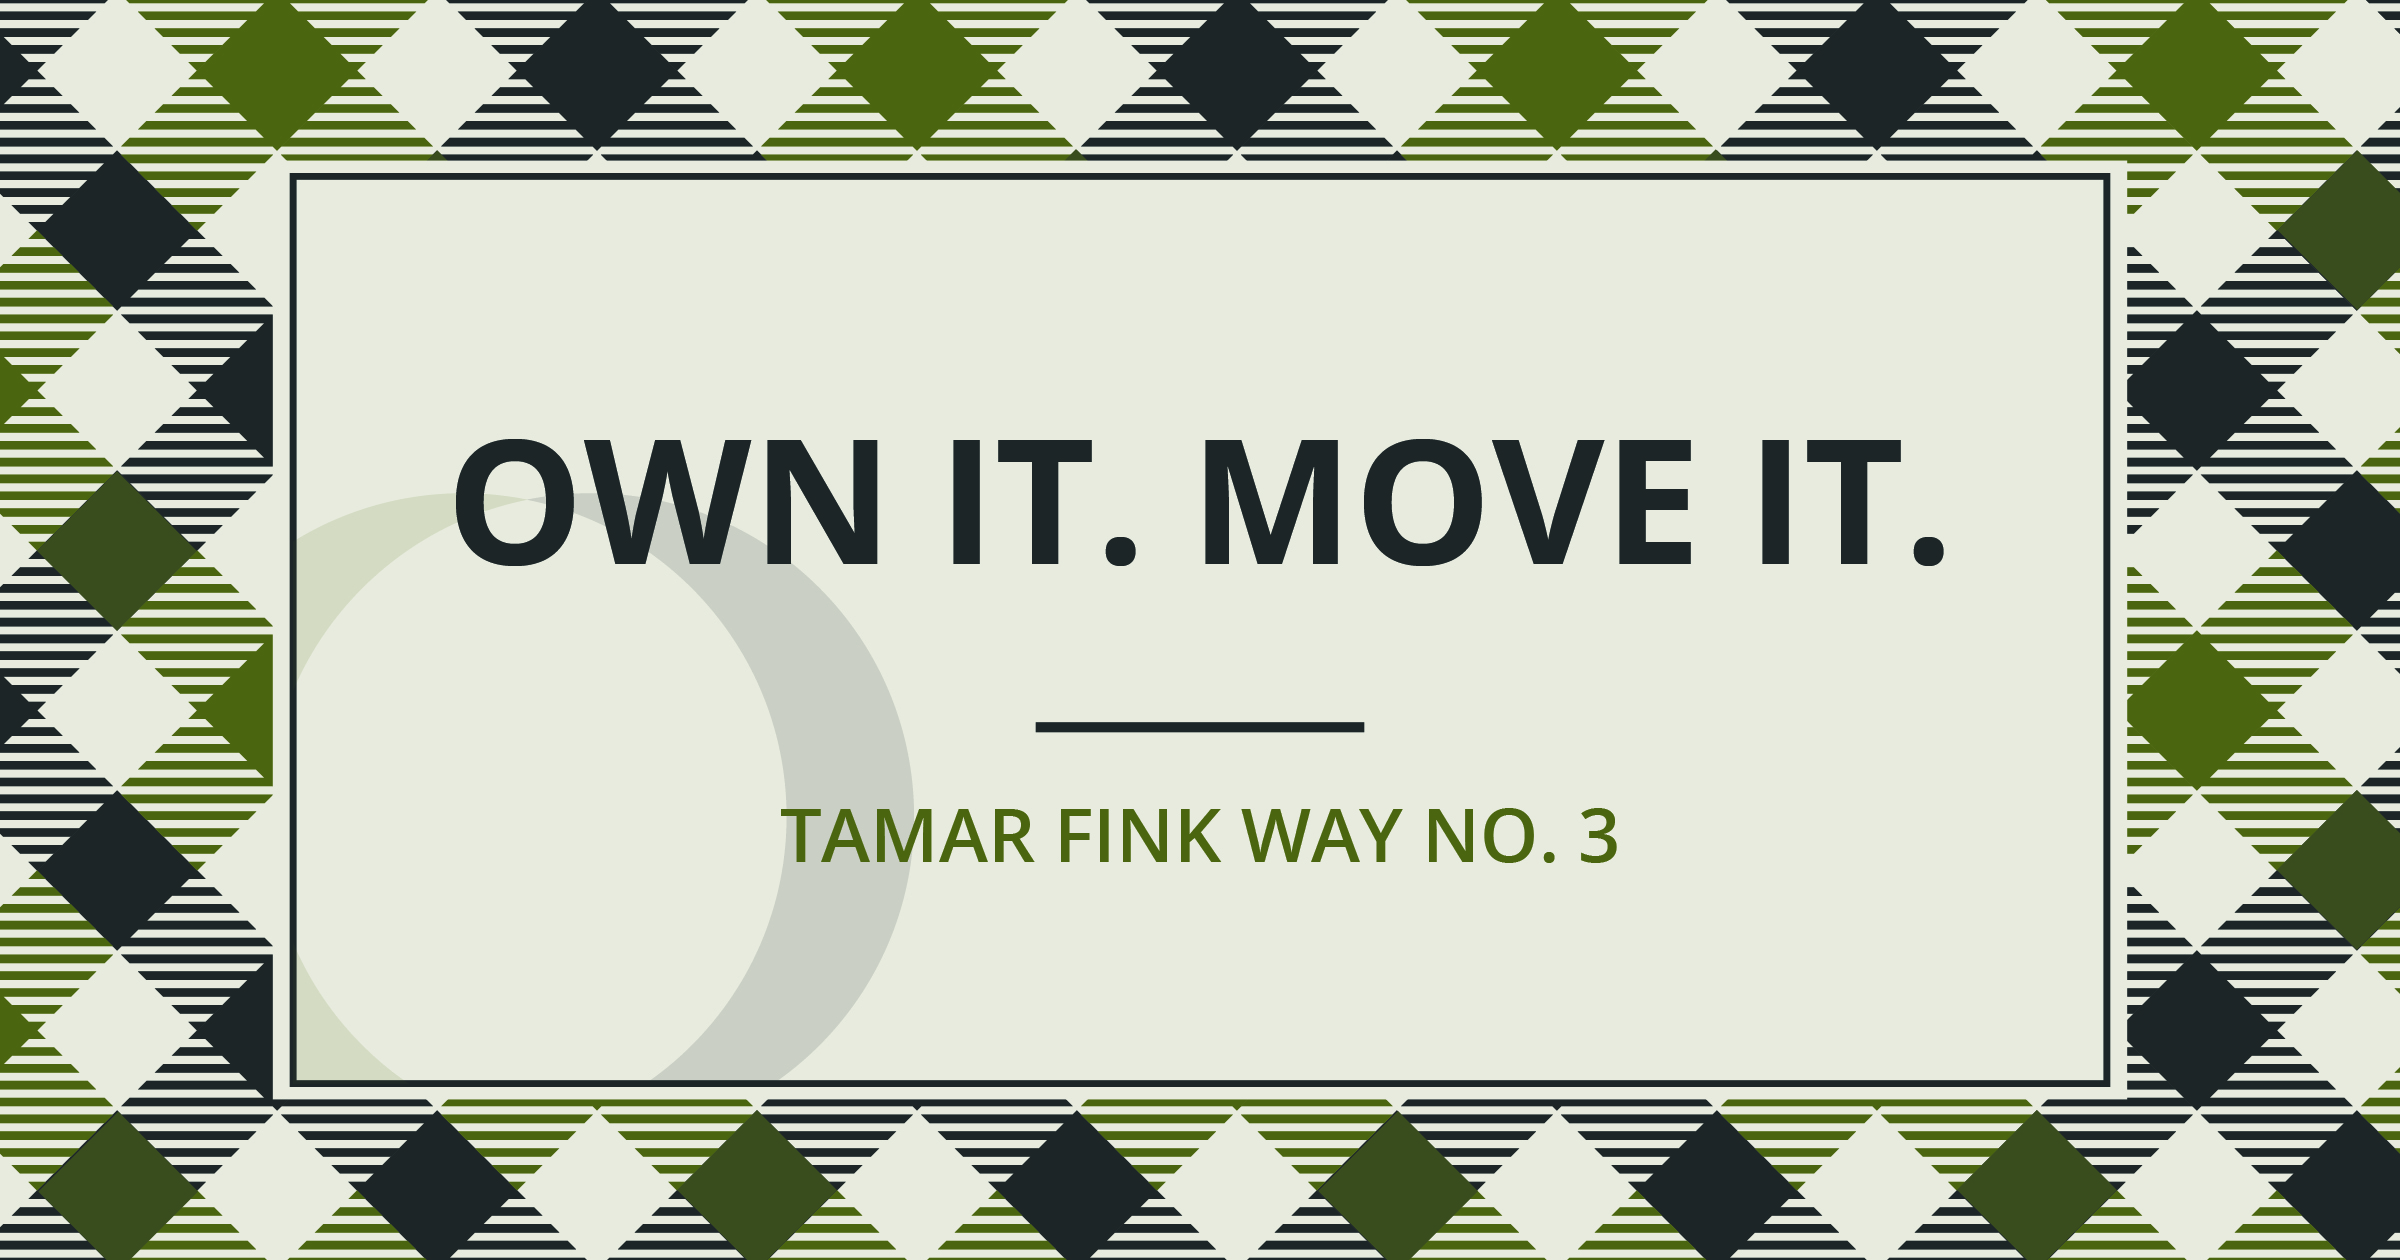 The Tamar Fink Way - #3